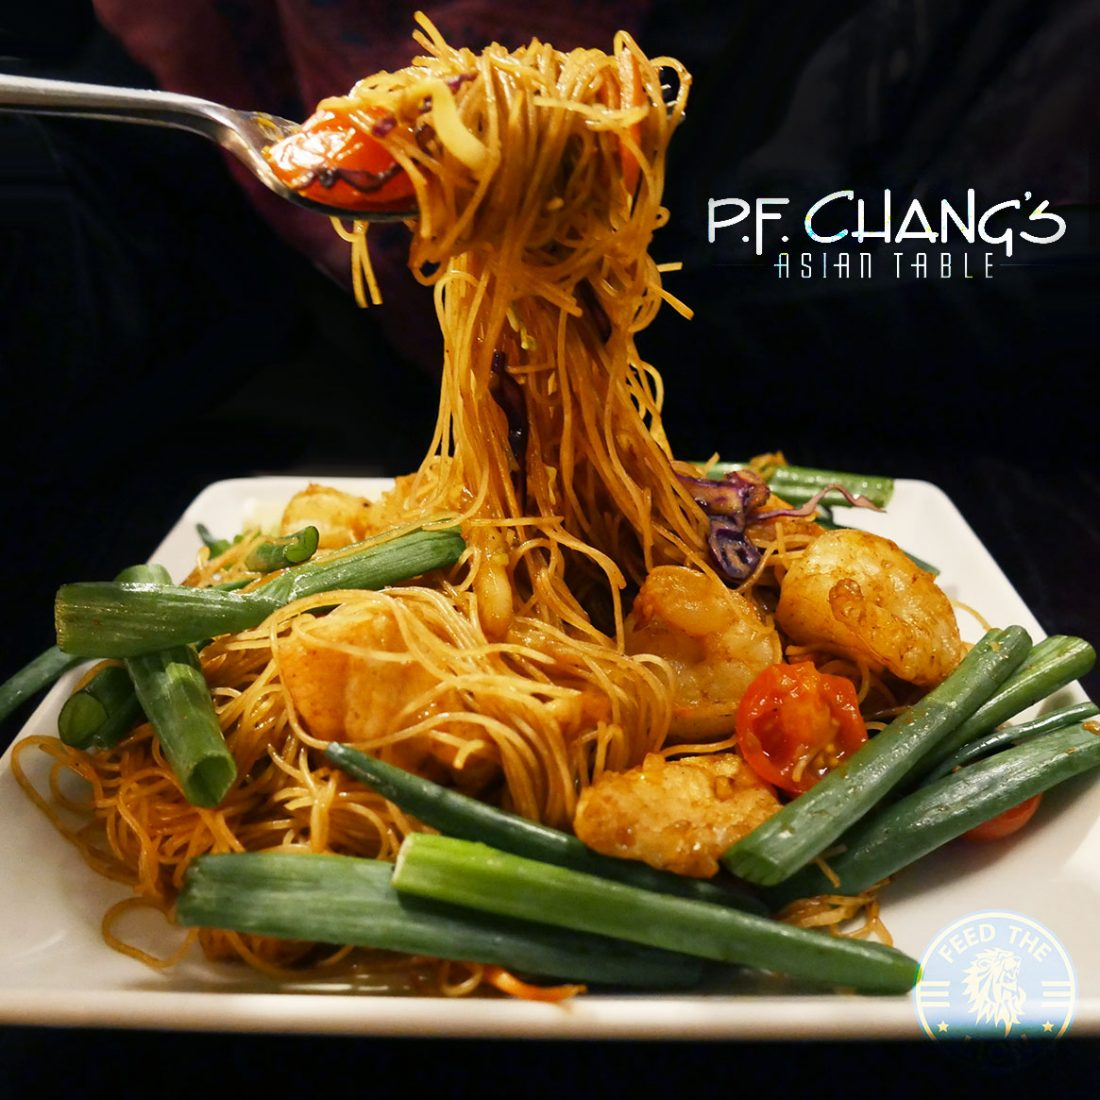 Chinese Noodle Pf Chang S Asian Table London Halal Restaurant Leicester Square Feed The Lion